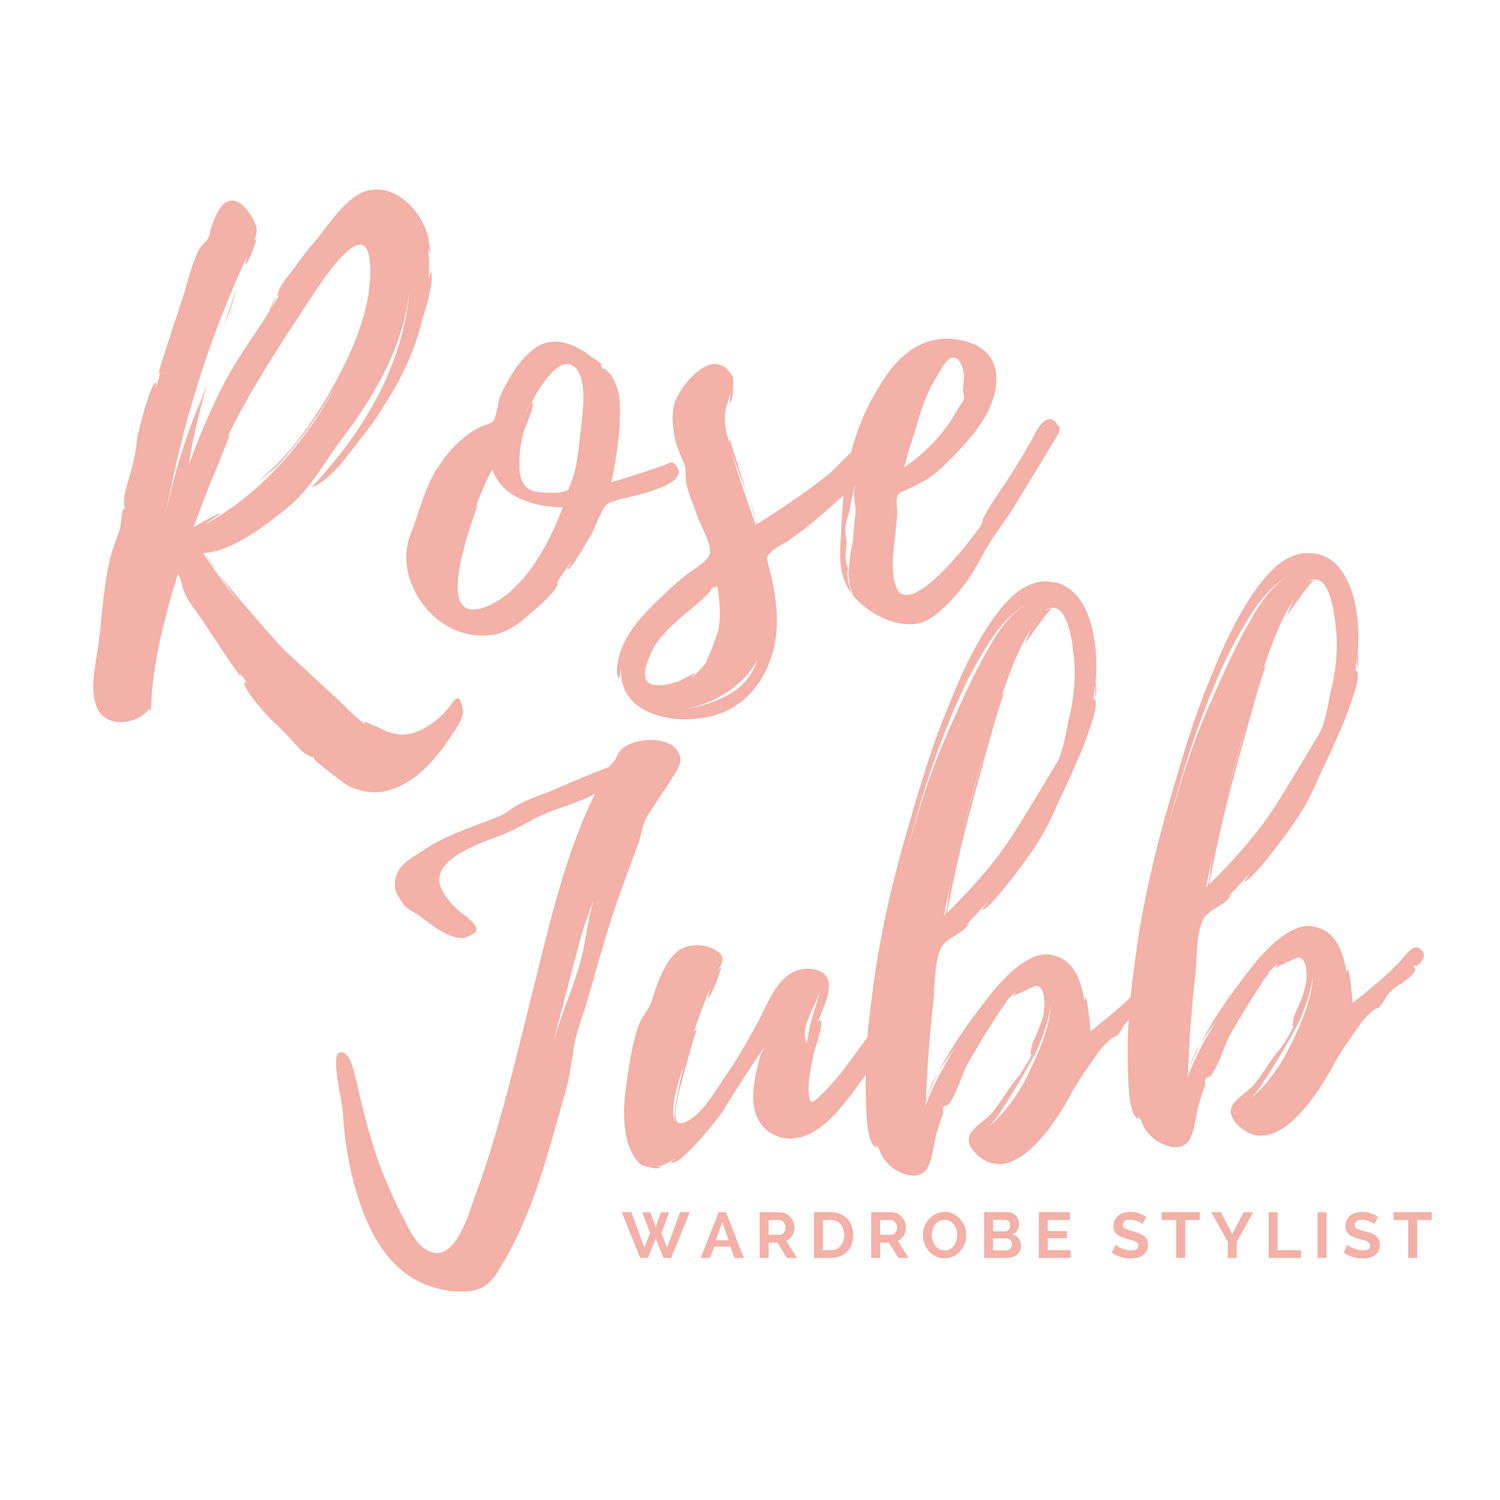 Rose Jubb Wardrobe Stylist